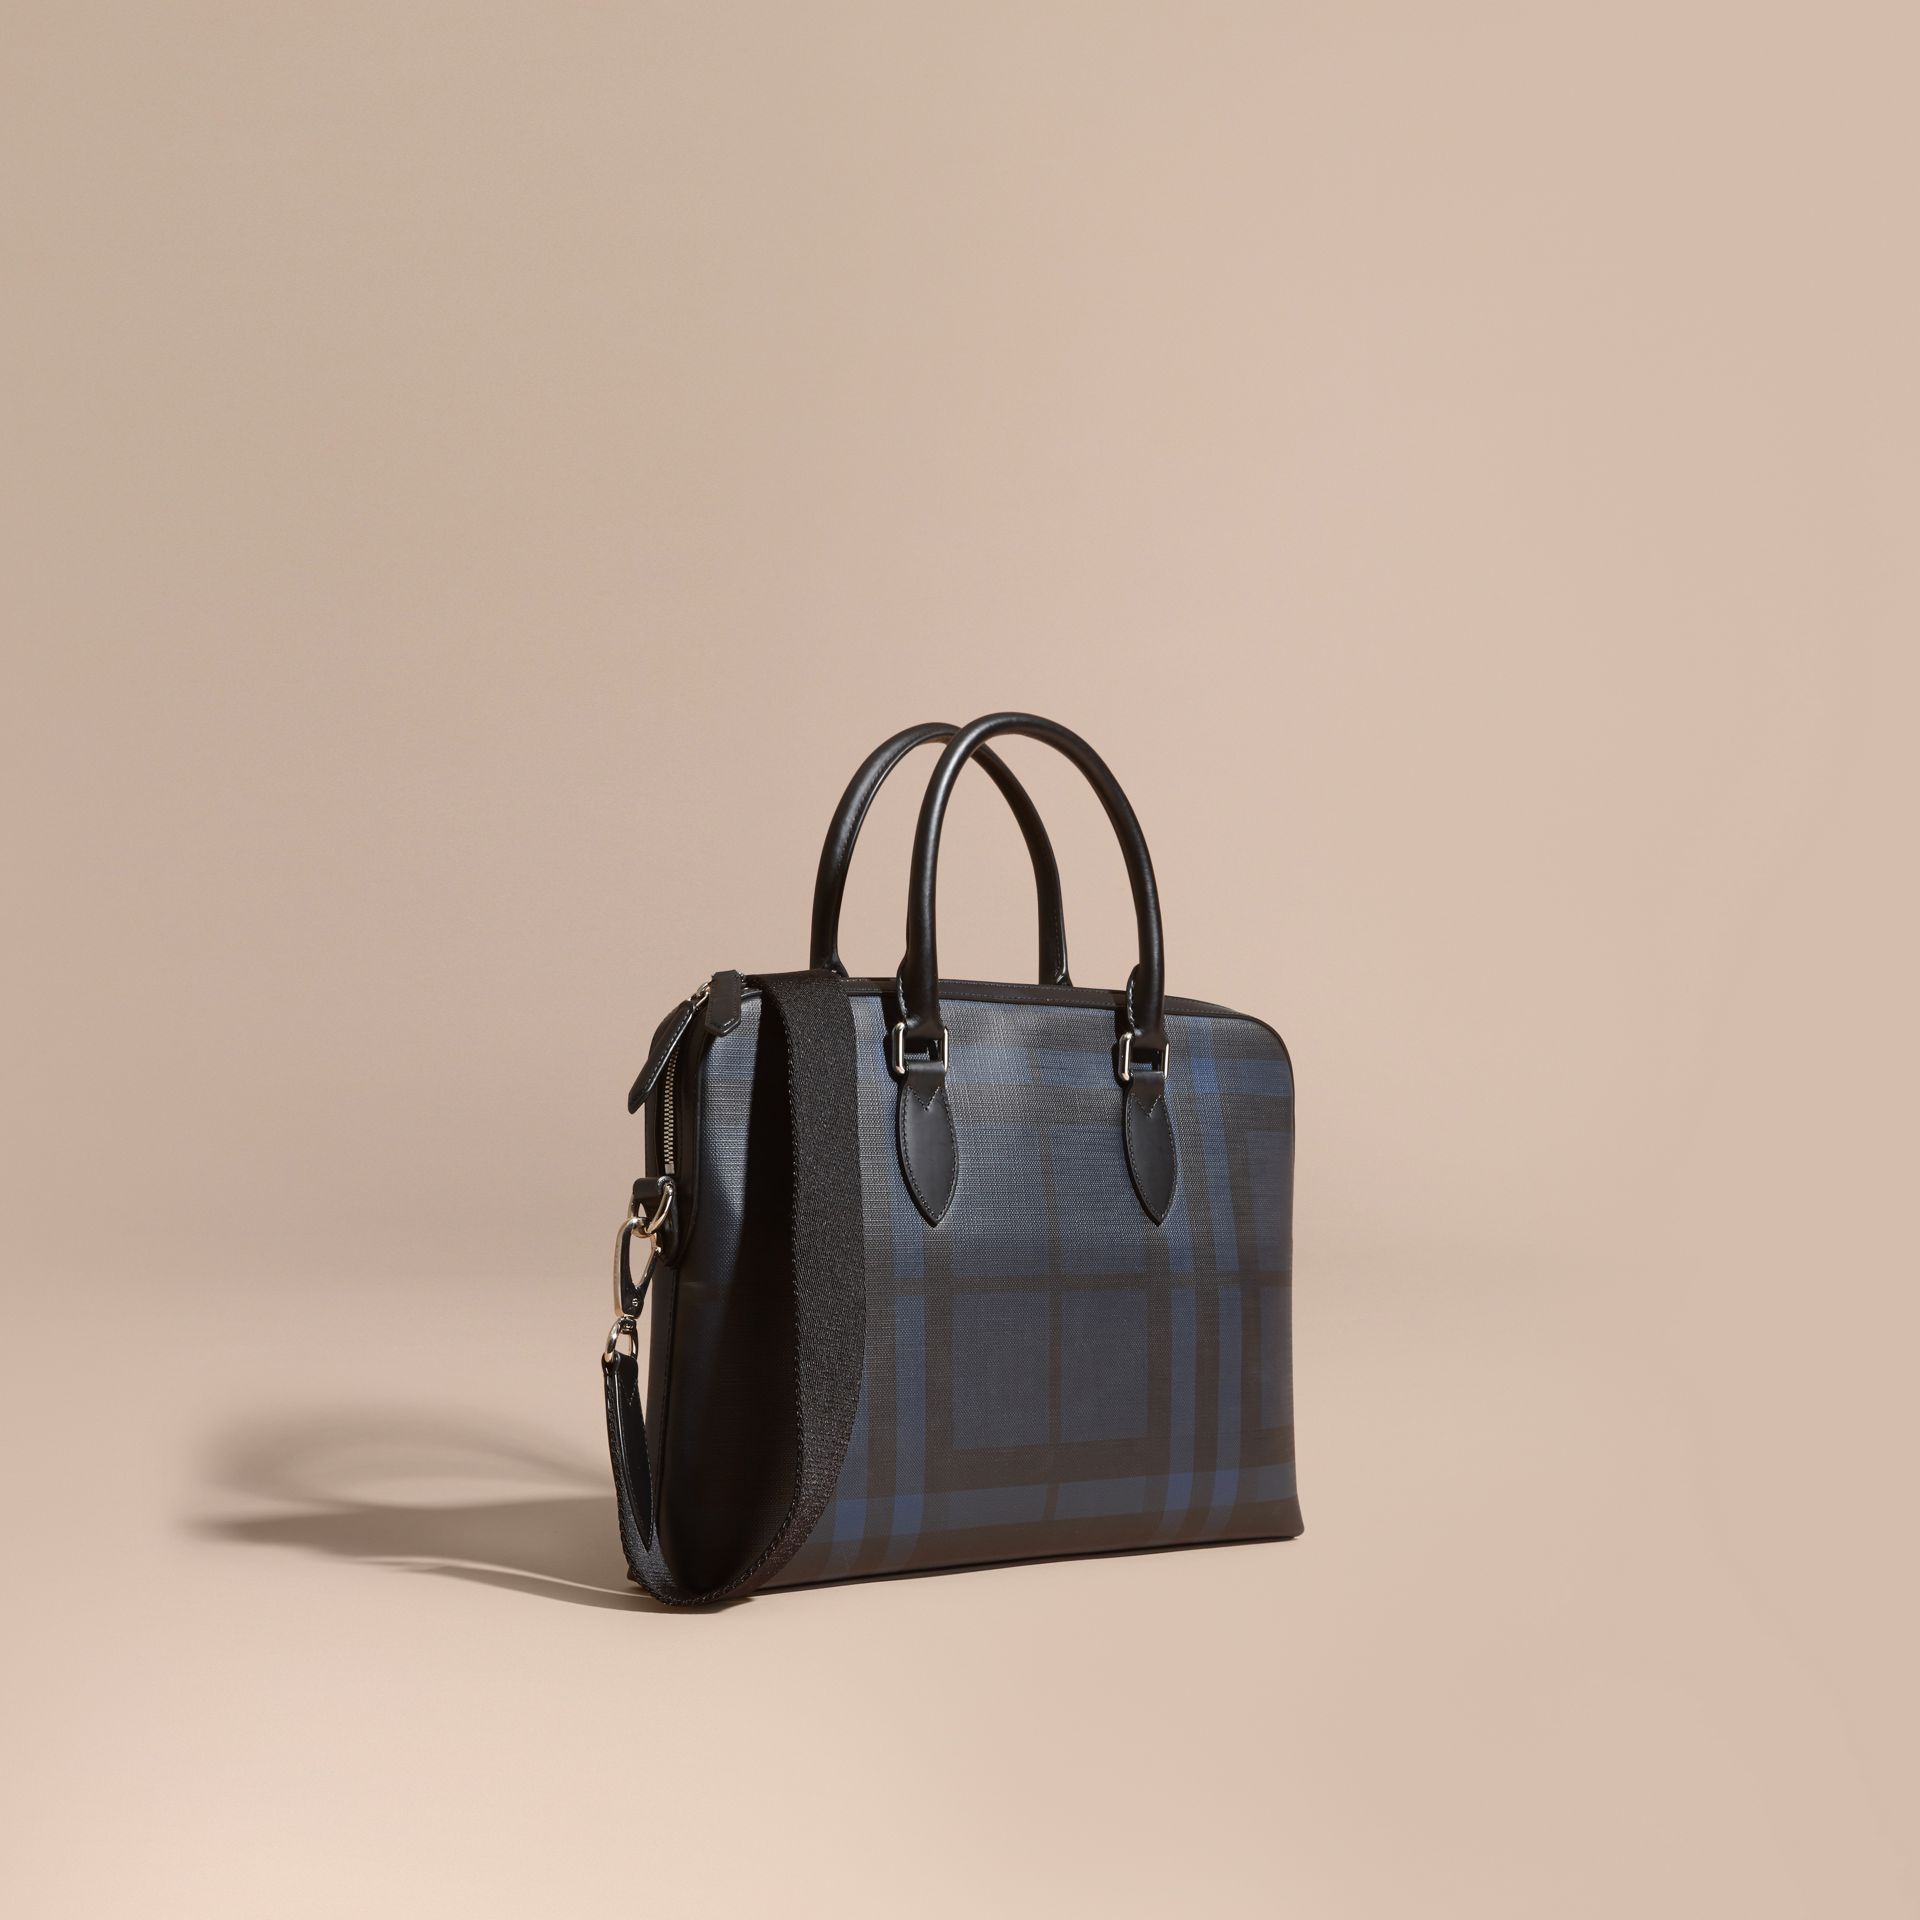 Sac The Barrow fin avec motif London check (Marine/noir) - photo de la galerie 1